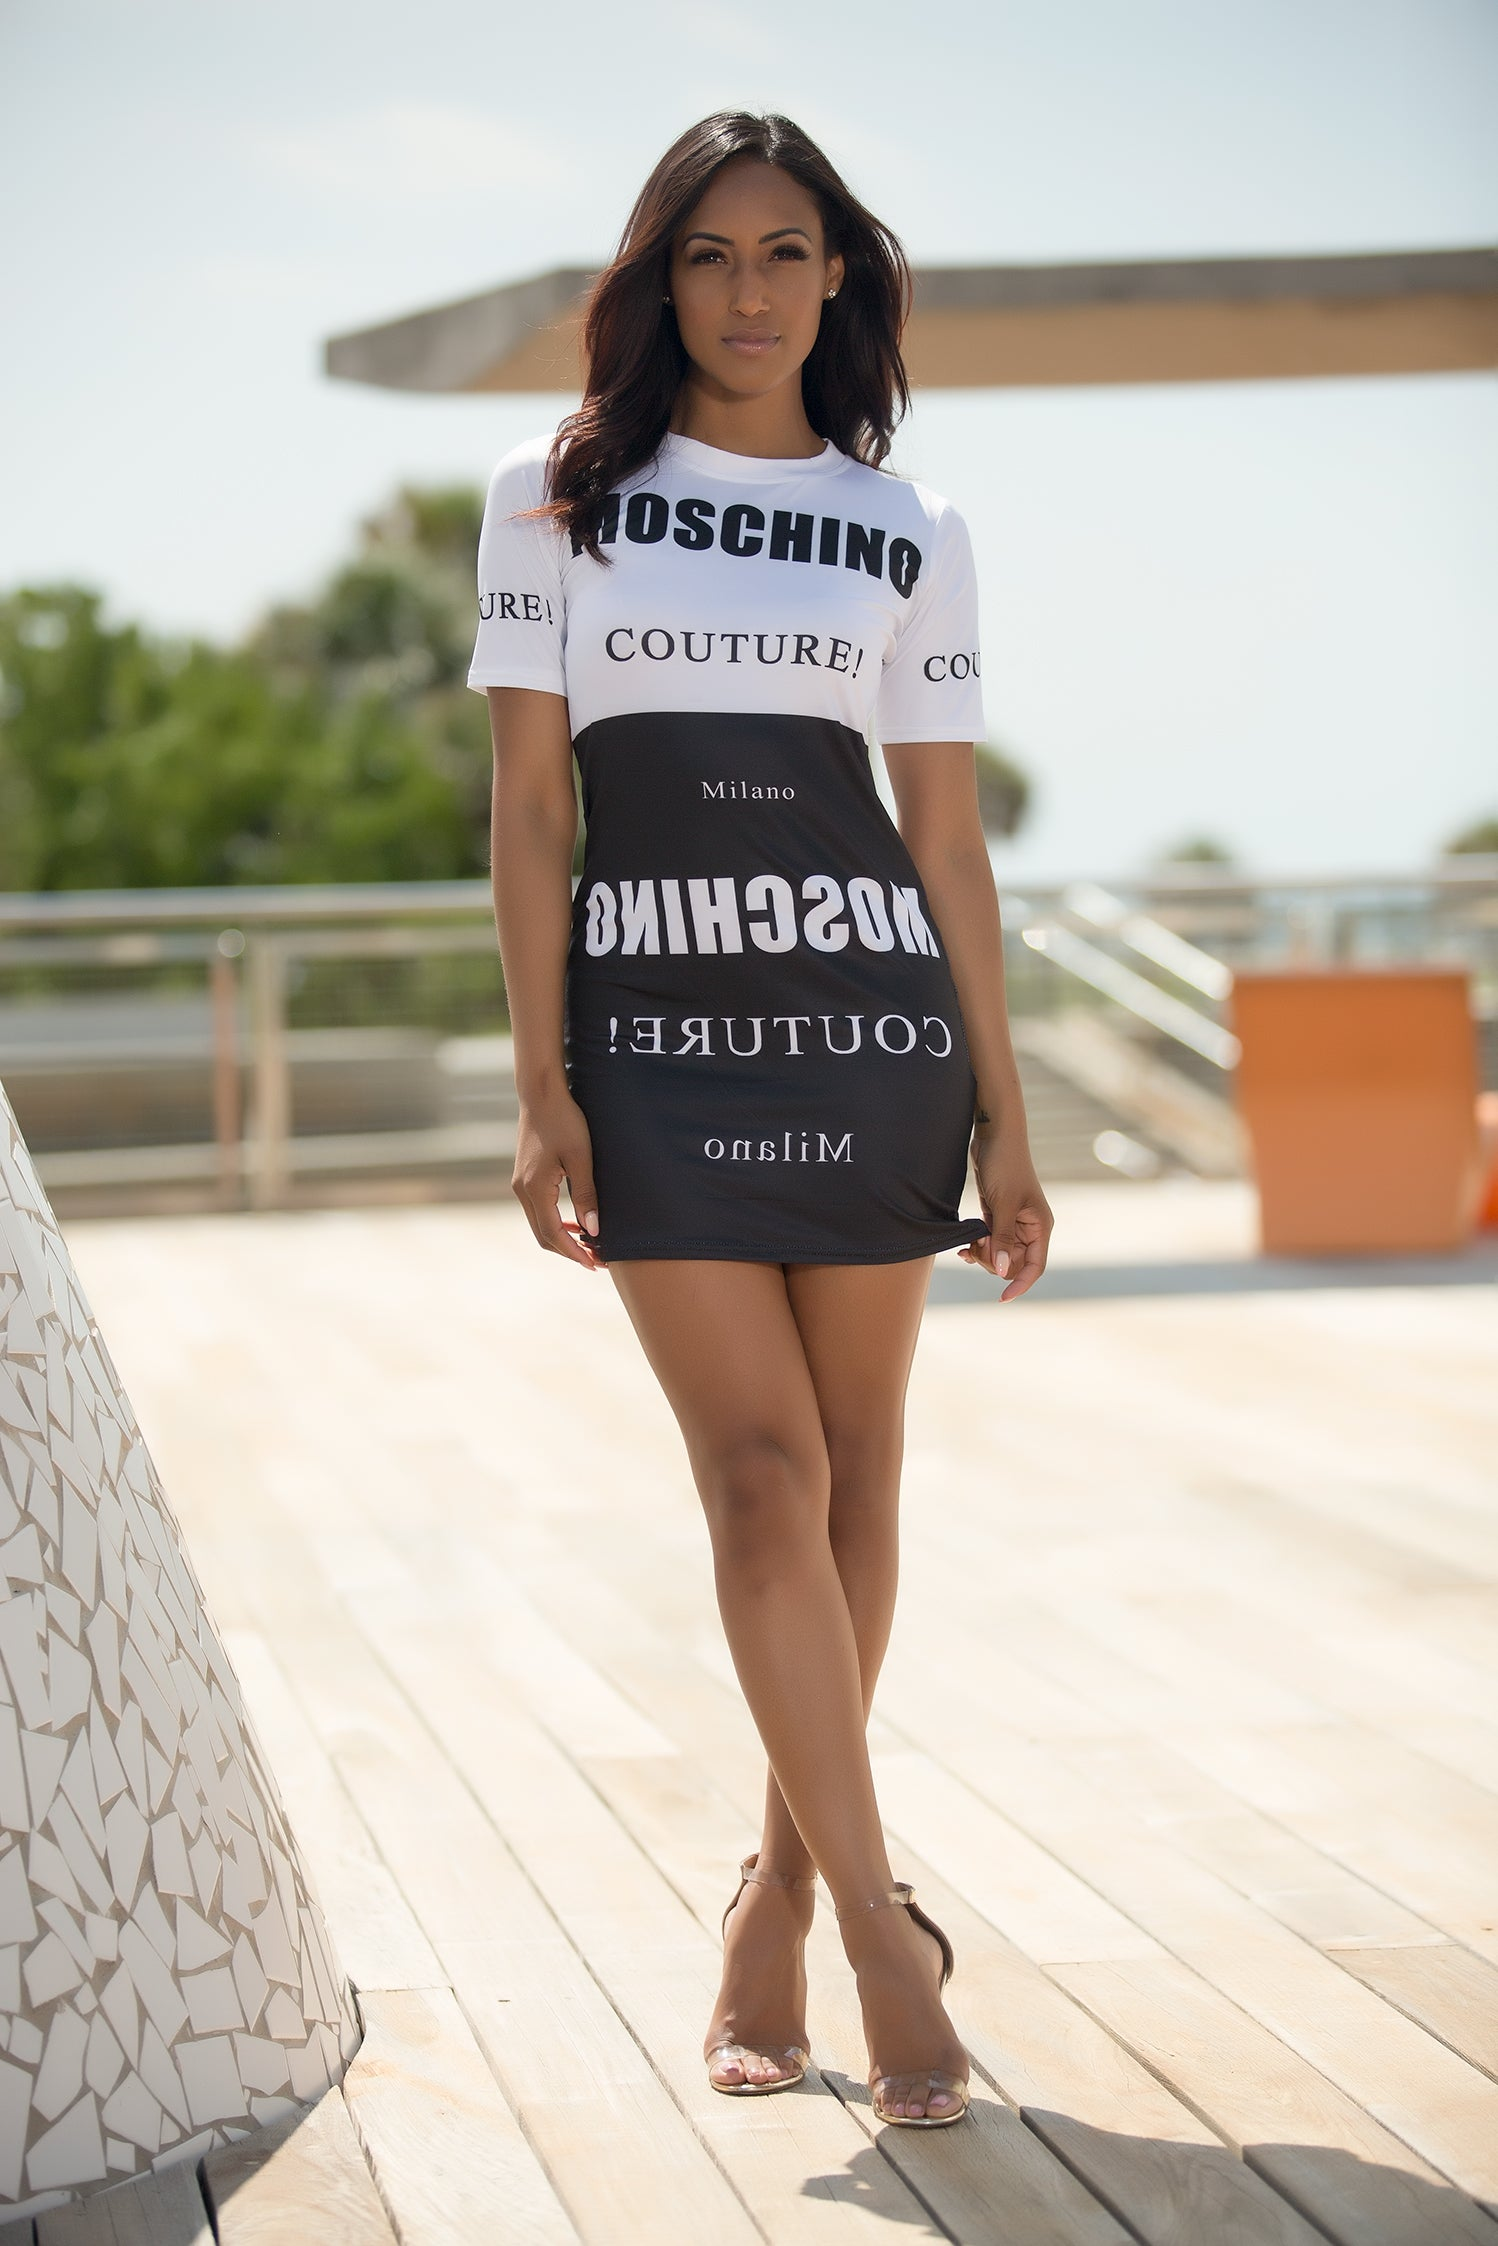 Milano Moschino Couture Mini Dress - Black/White